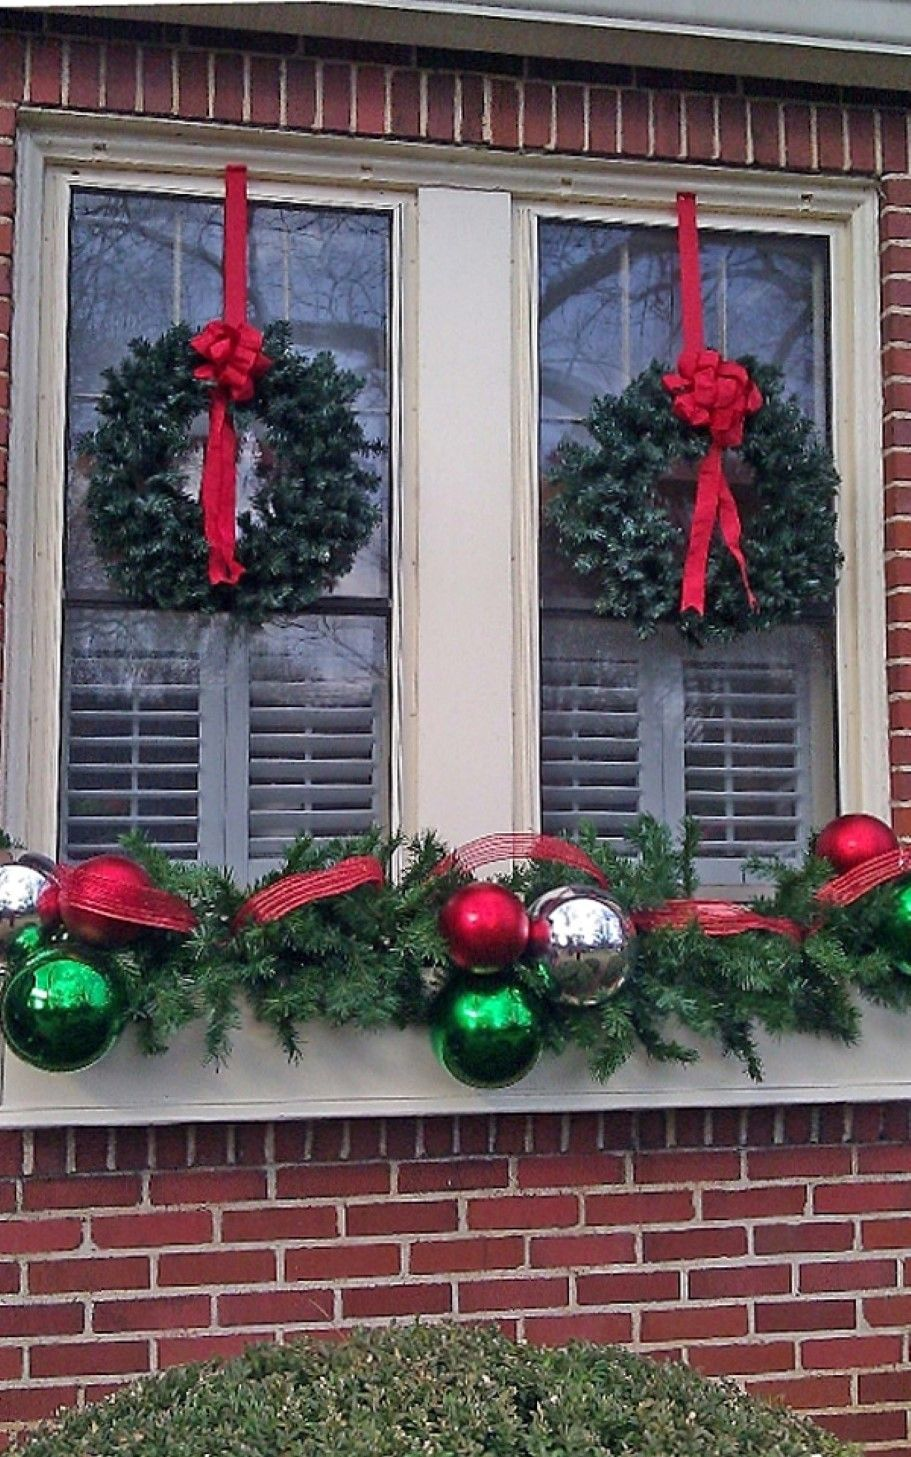 decoration twin wreaths with red bows for enchanting christmas window decoration plus garland feat silver and green balls simple christmas window